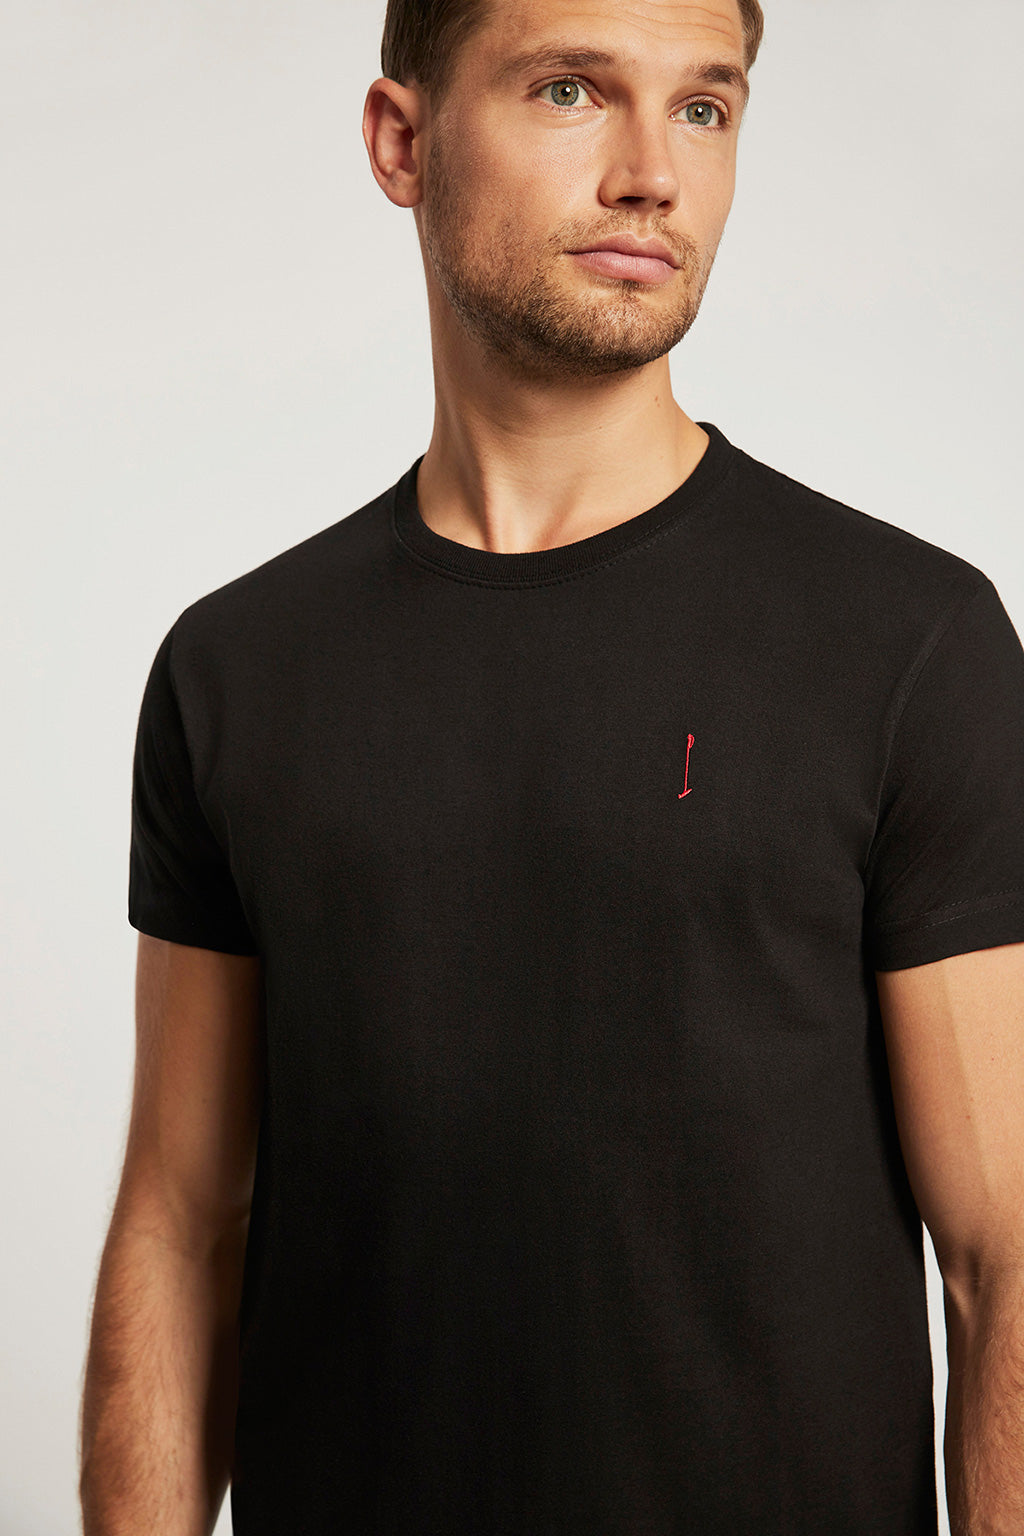 Black cotton tee with embroidered logo